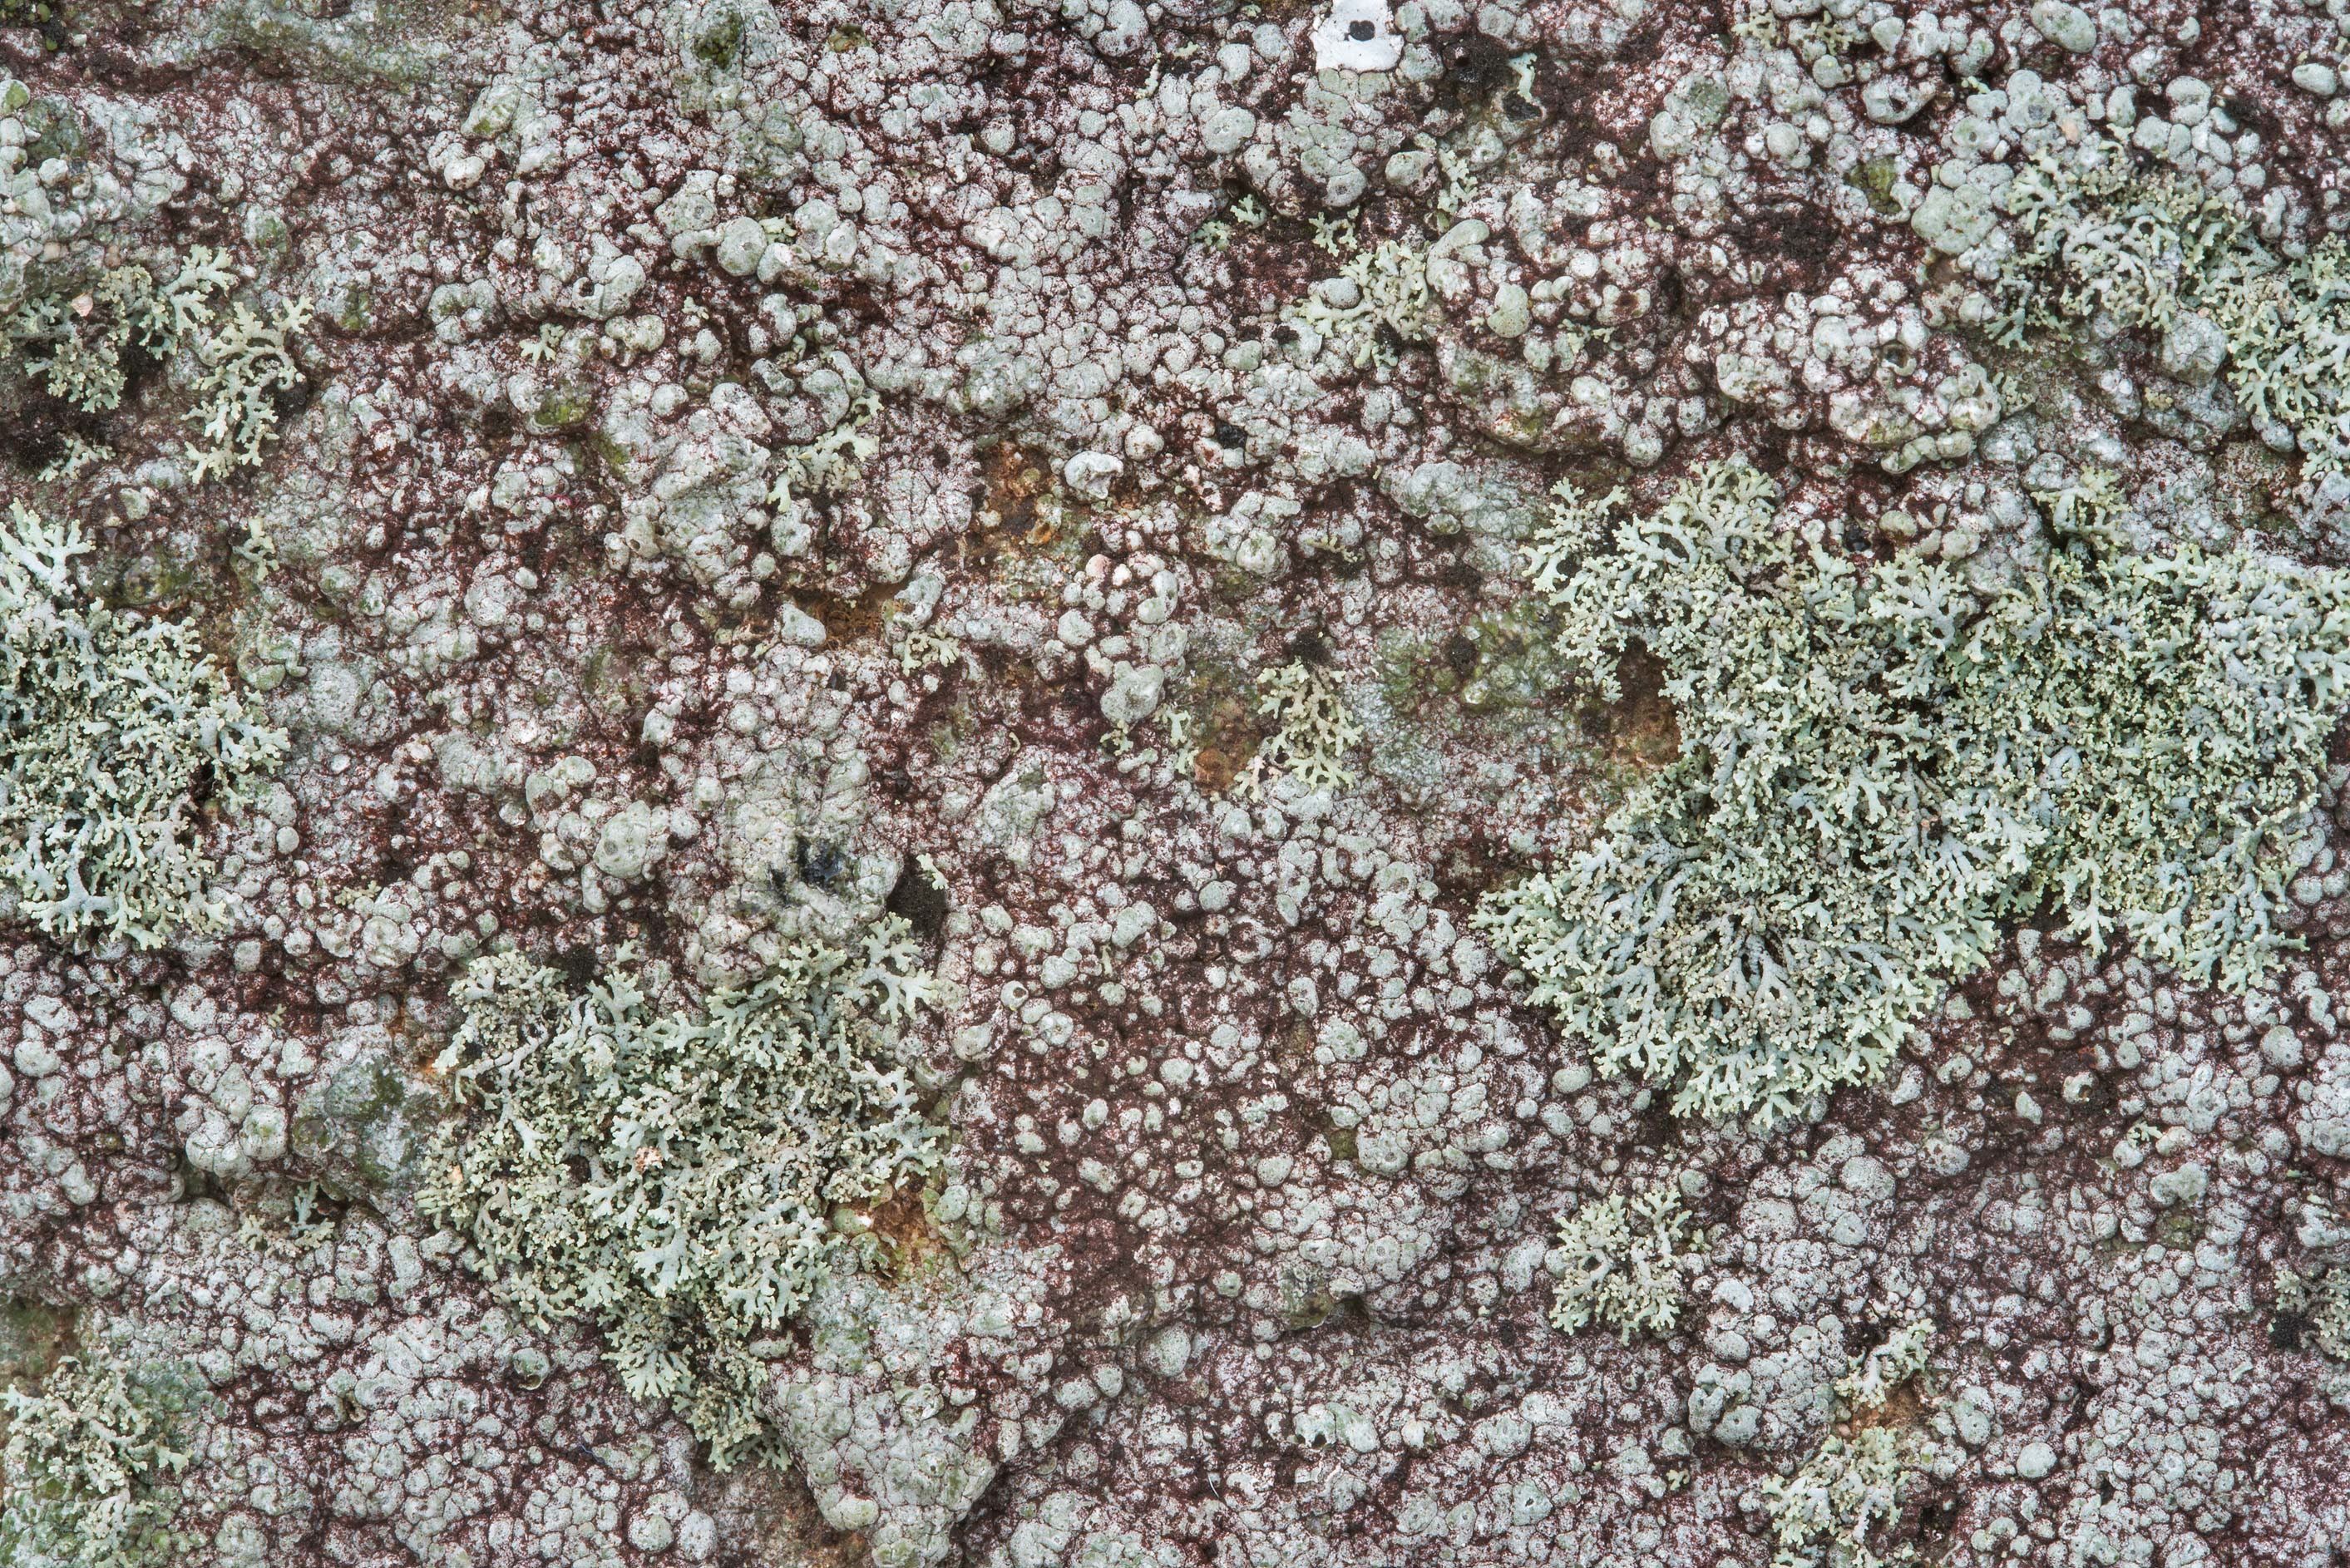 Lichens covering granite in Enchanted Rock State Natural Area. Fredericksburg, Texas